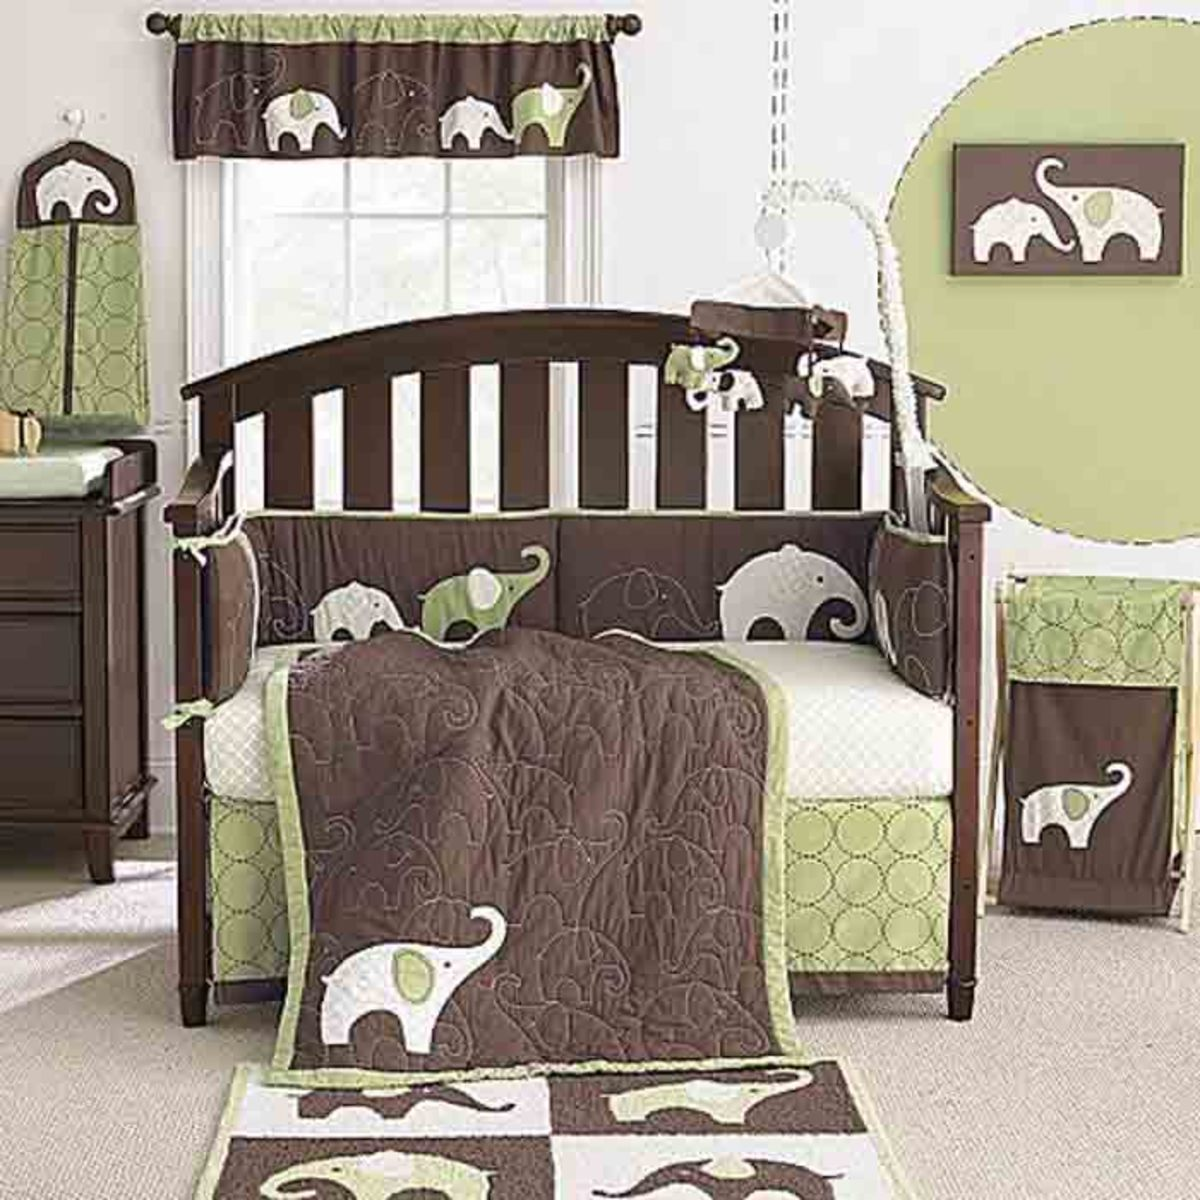 Decorating ideas for a baby boy nursery - Baby nursey ideas ...